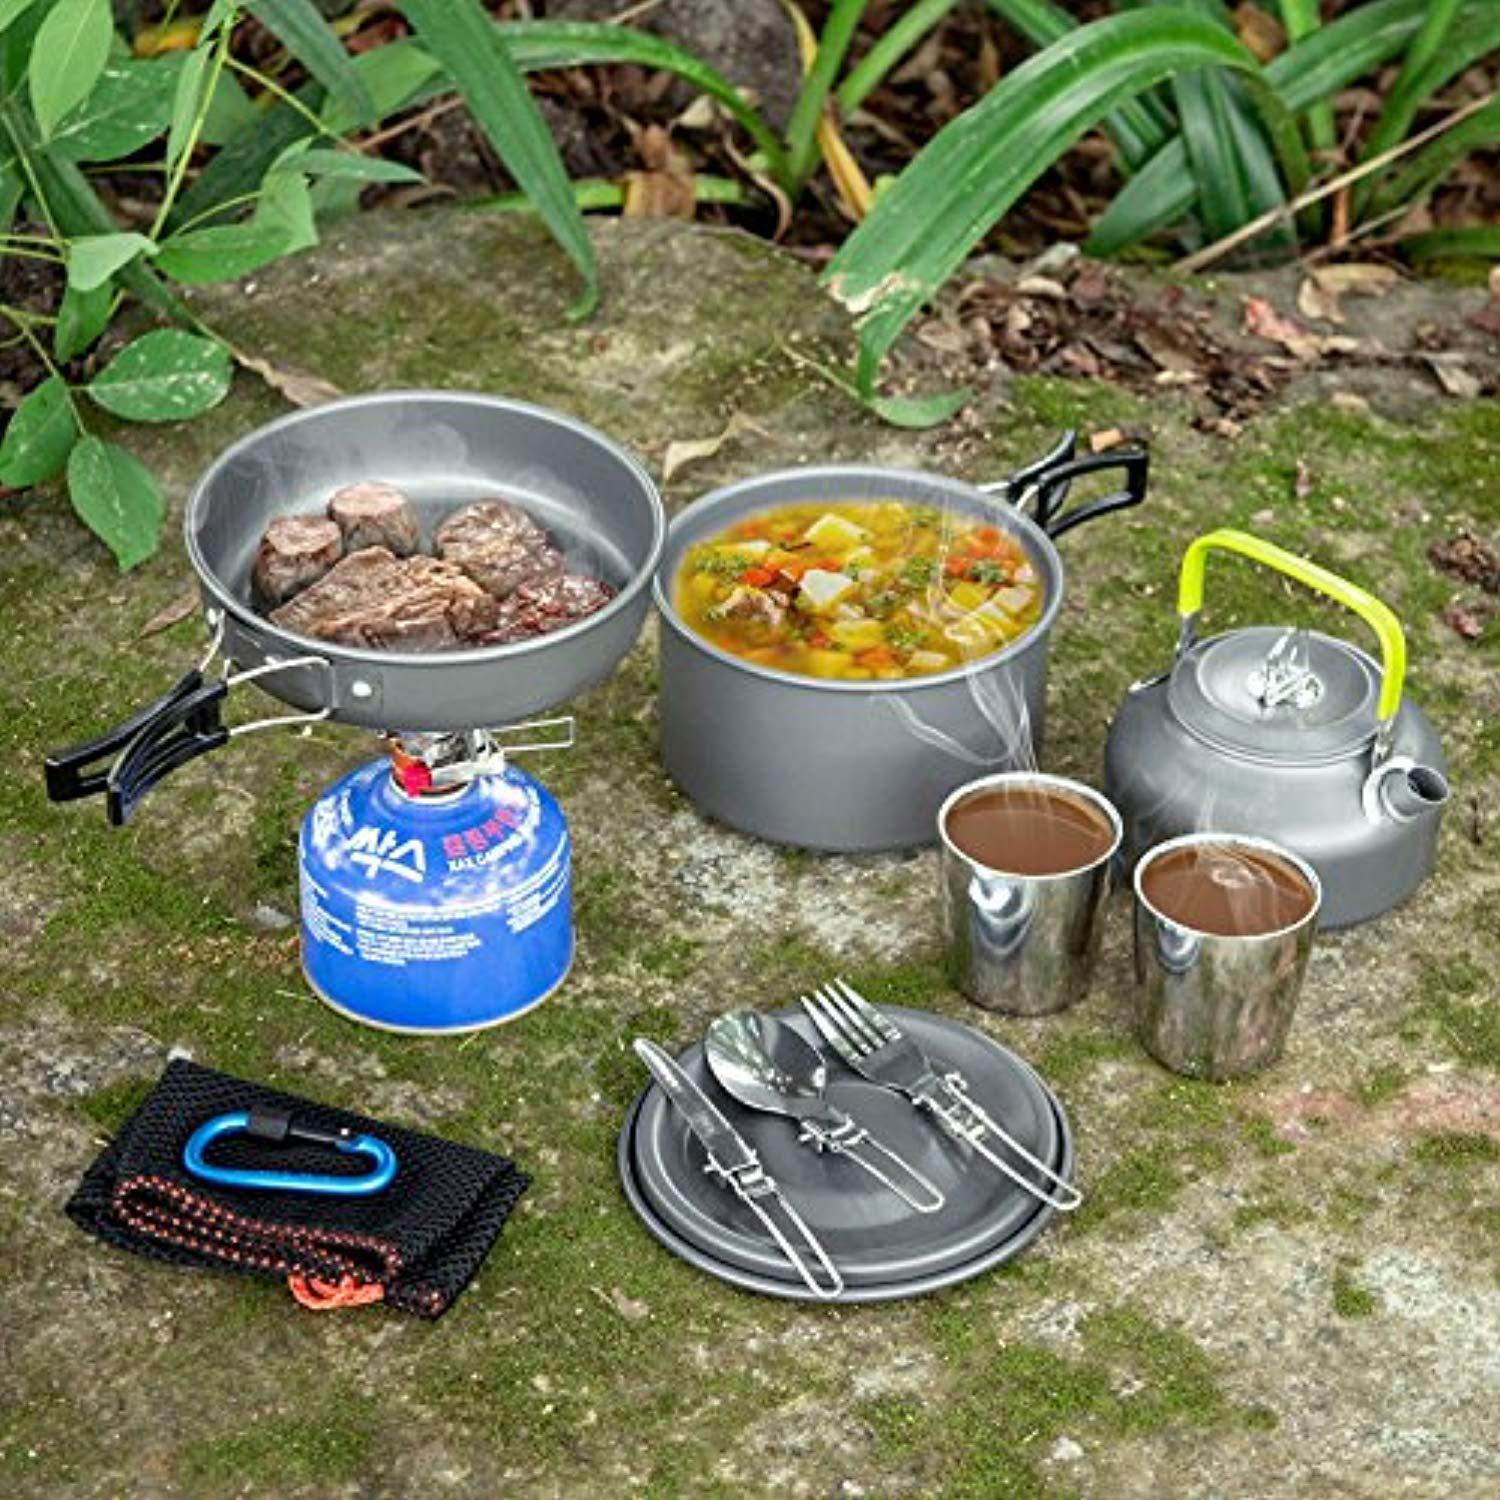 Camping Cookware Mess Kit, Lightweight Pot Pan Kettle with 2 Cups